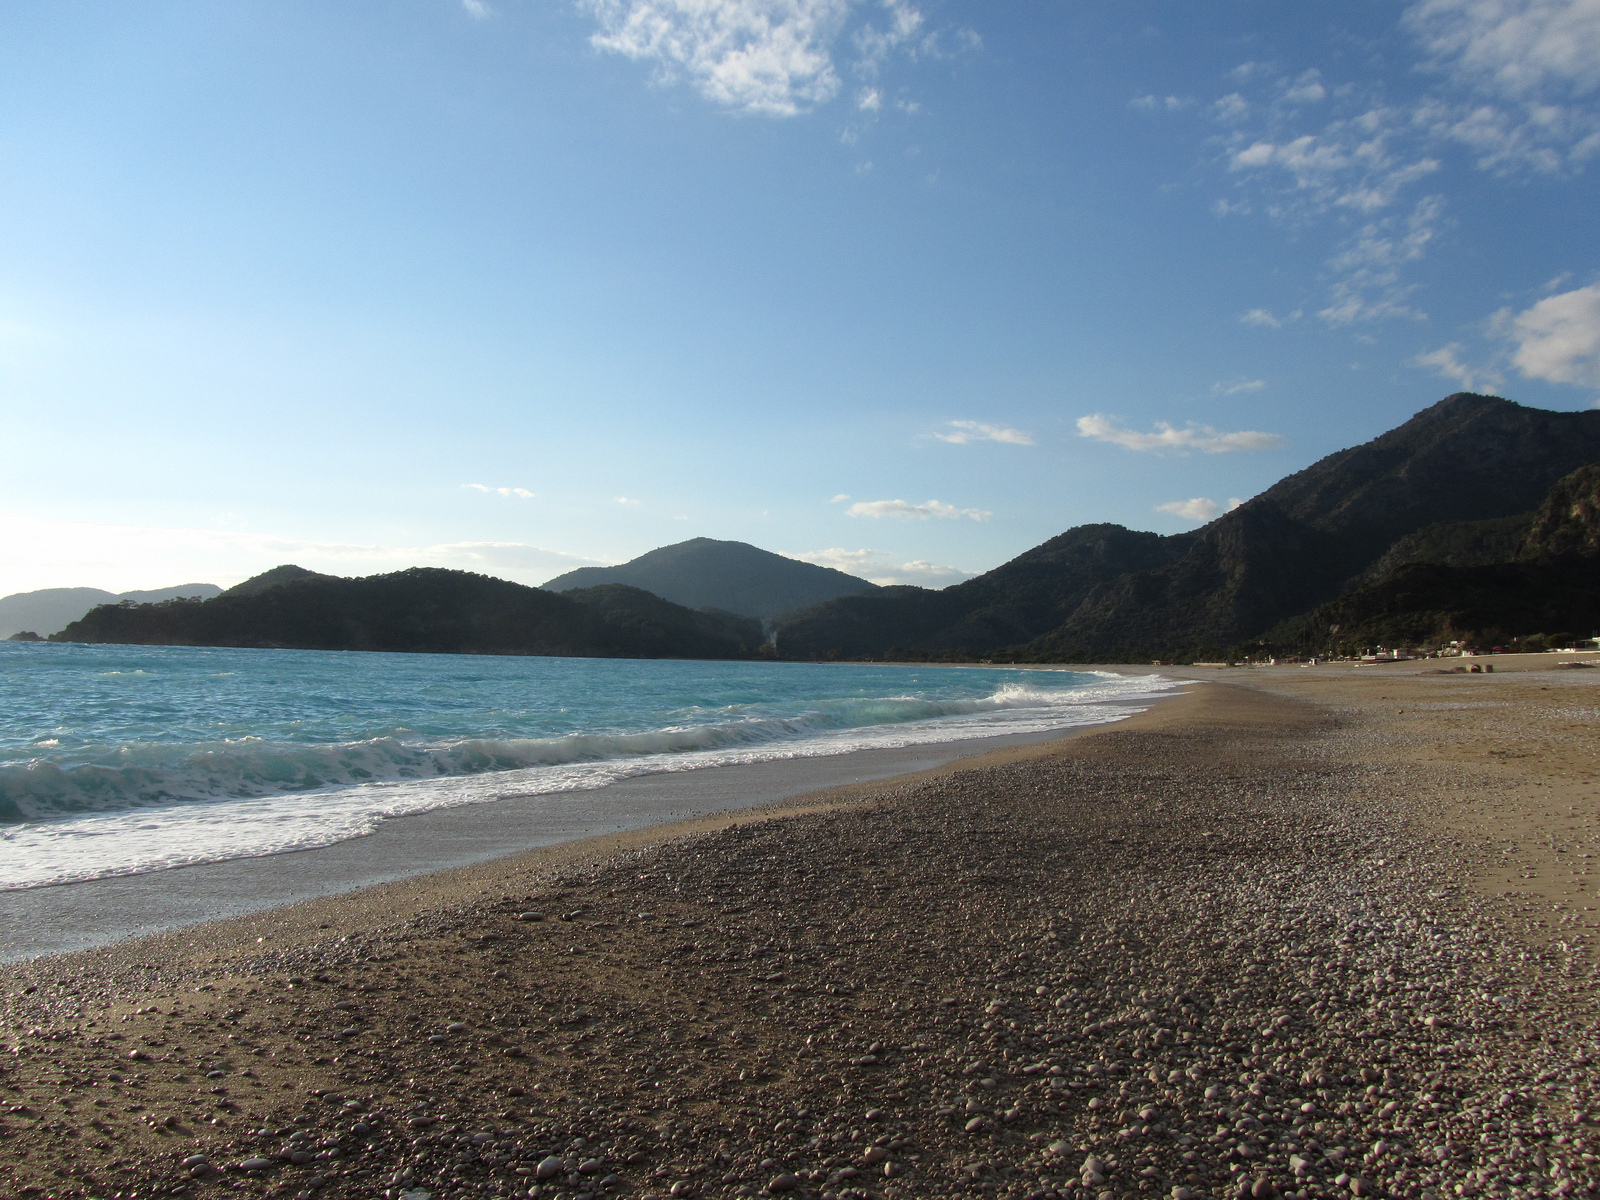 Lounging on Ölüdeniz beach is one of the best things to do in Dalaman!